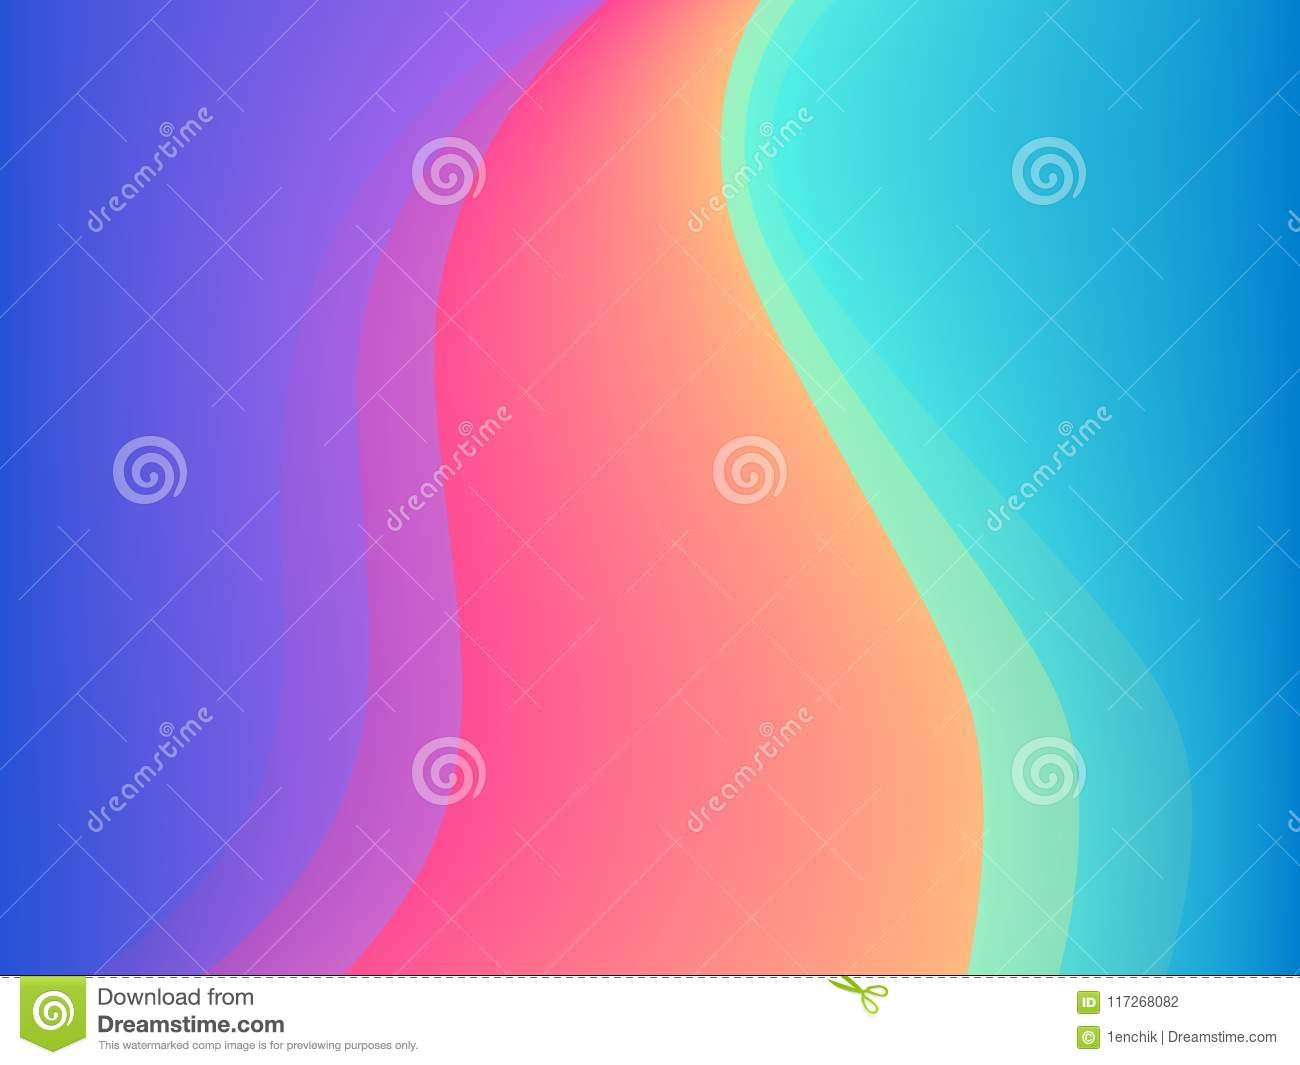 Blue and pink colors vector abstract wavy presentation or poster background